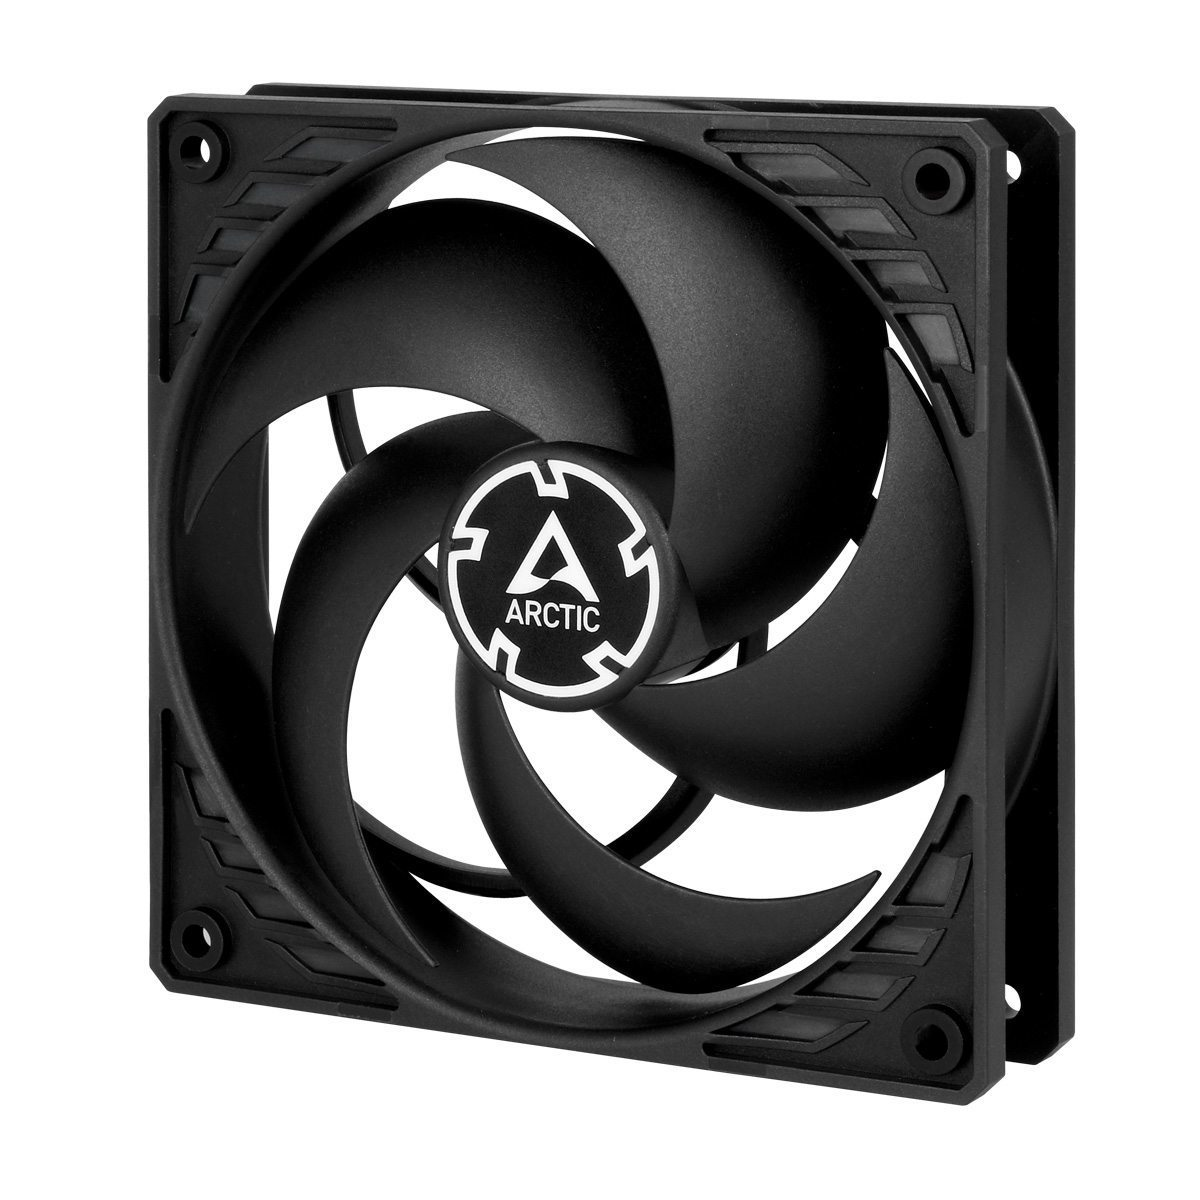 Arctic Fan 120mm P12 PWM - black/black 200-1800rpm - ACFAN00119A